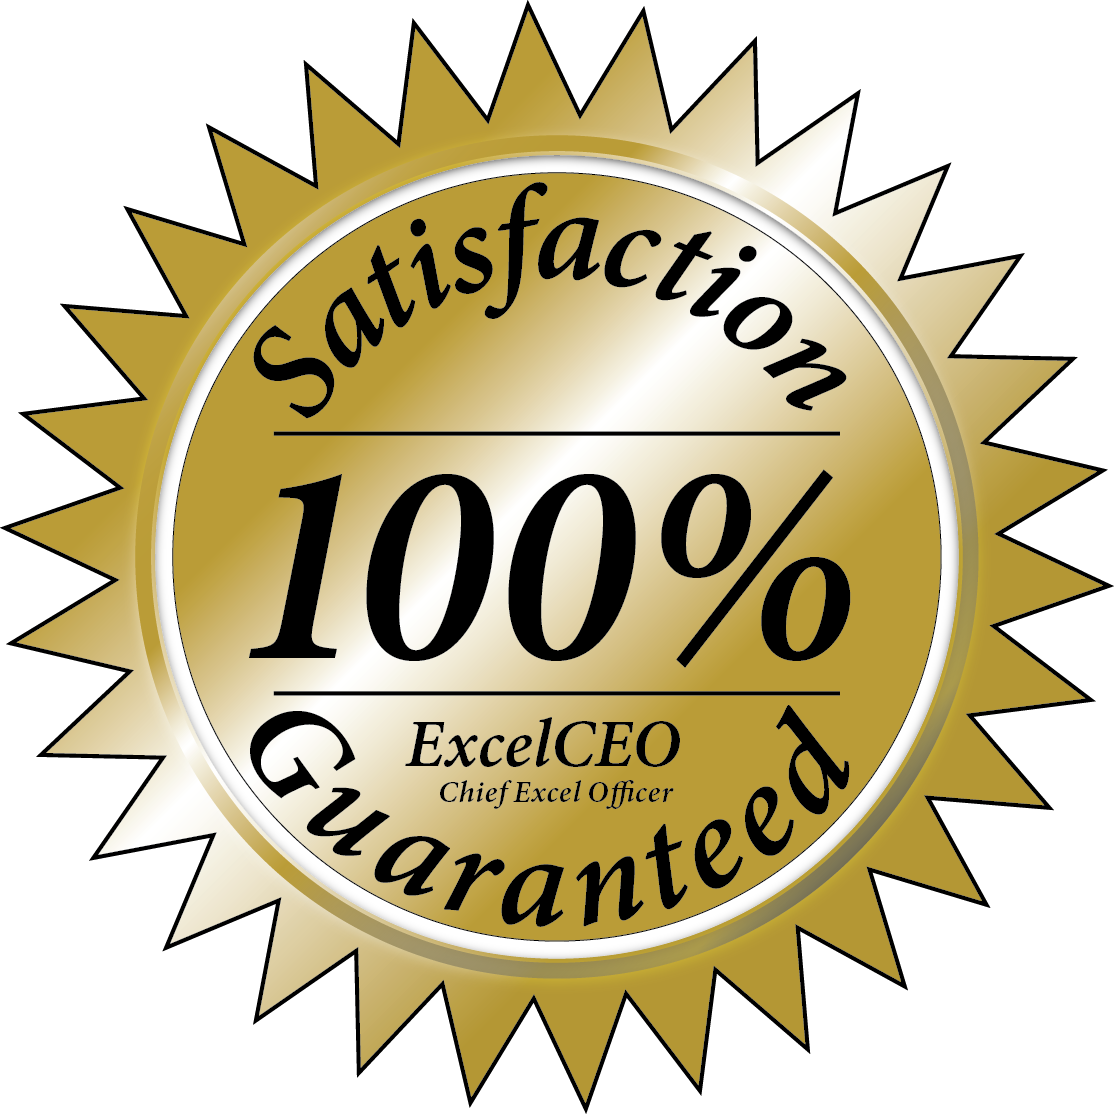 We are so confident you will learn so much with ExcelCEO training that we will make you our exclusive guarantee that does not exist ANYWHERE today.